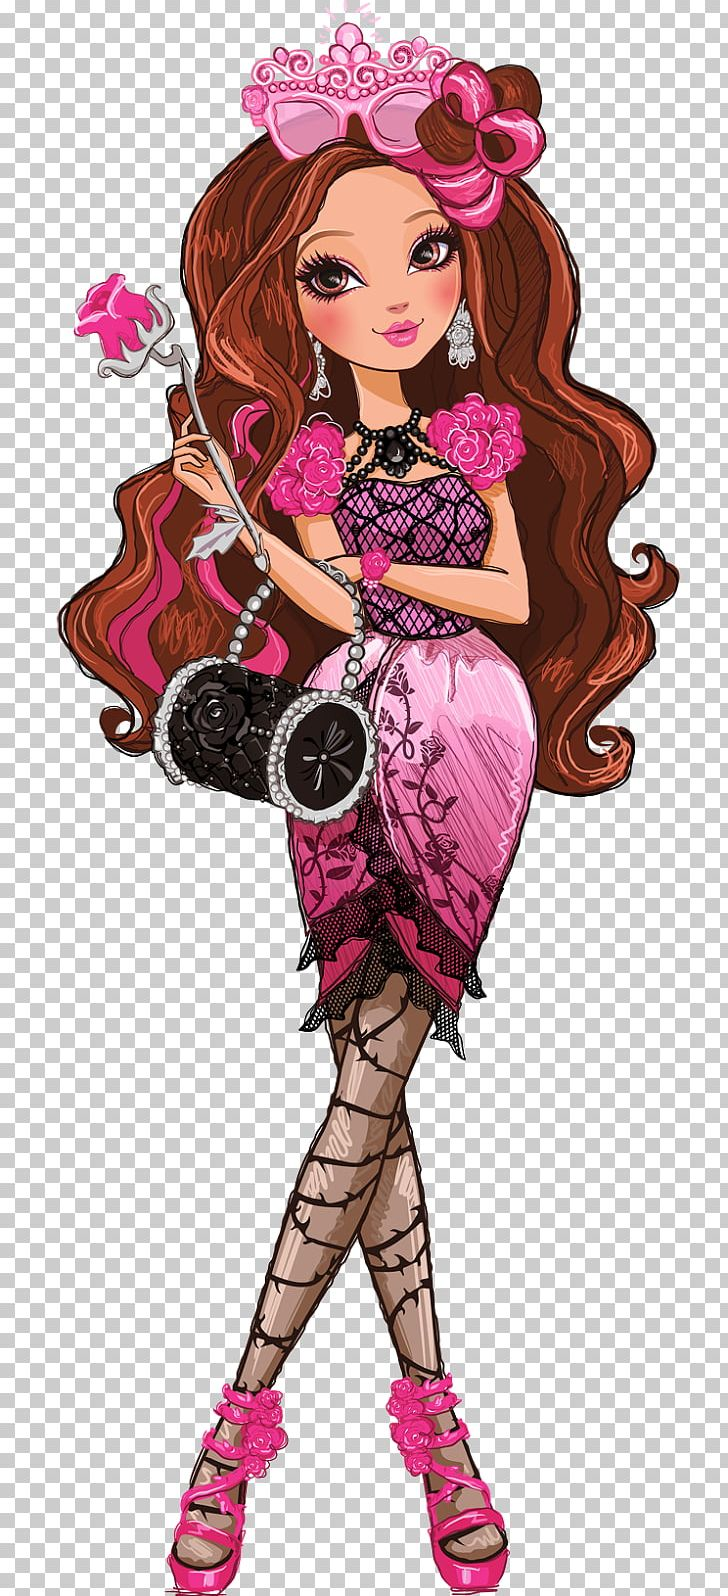 Briar Beauty Ever After High Drawing Sleeping Beauty PNG, Clipart, Art,  Barbie, Beauty, Briar Beauty, Brown